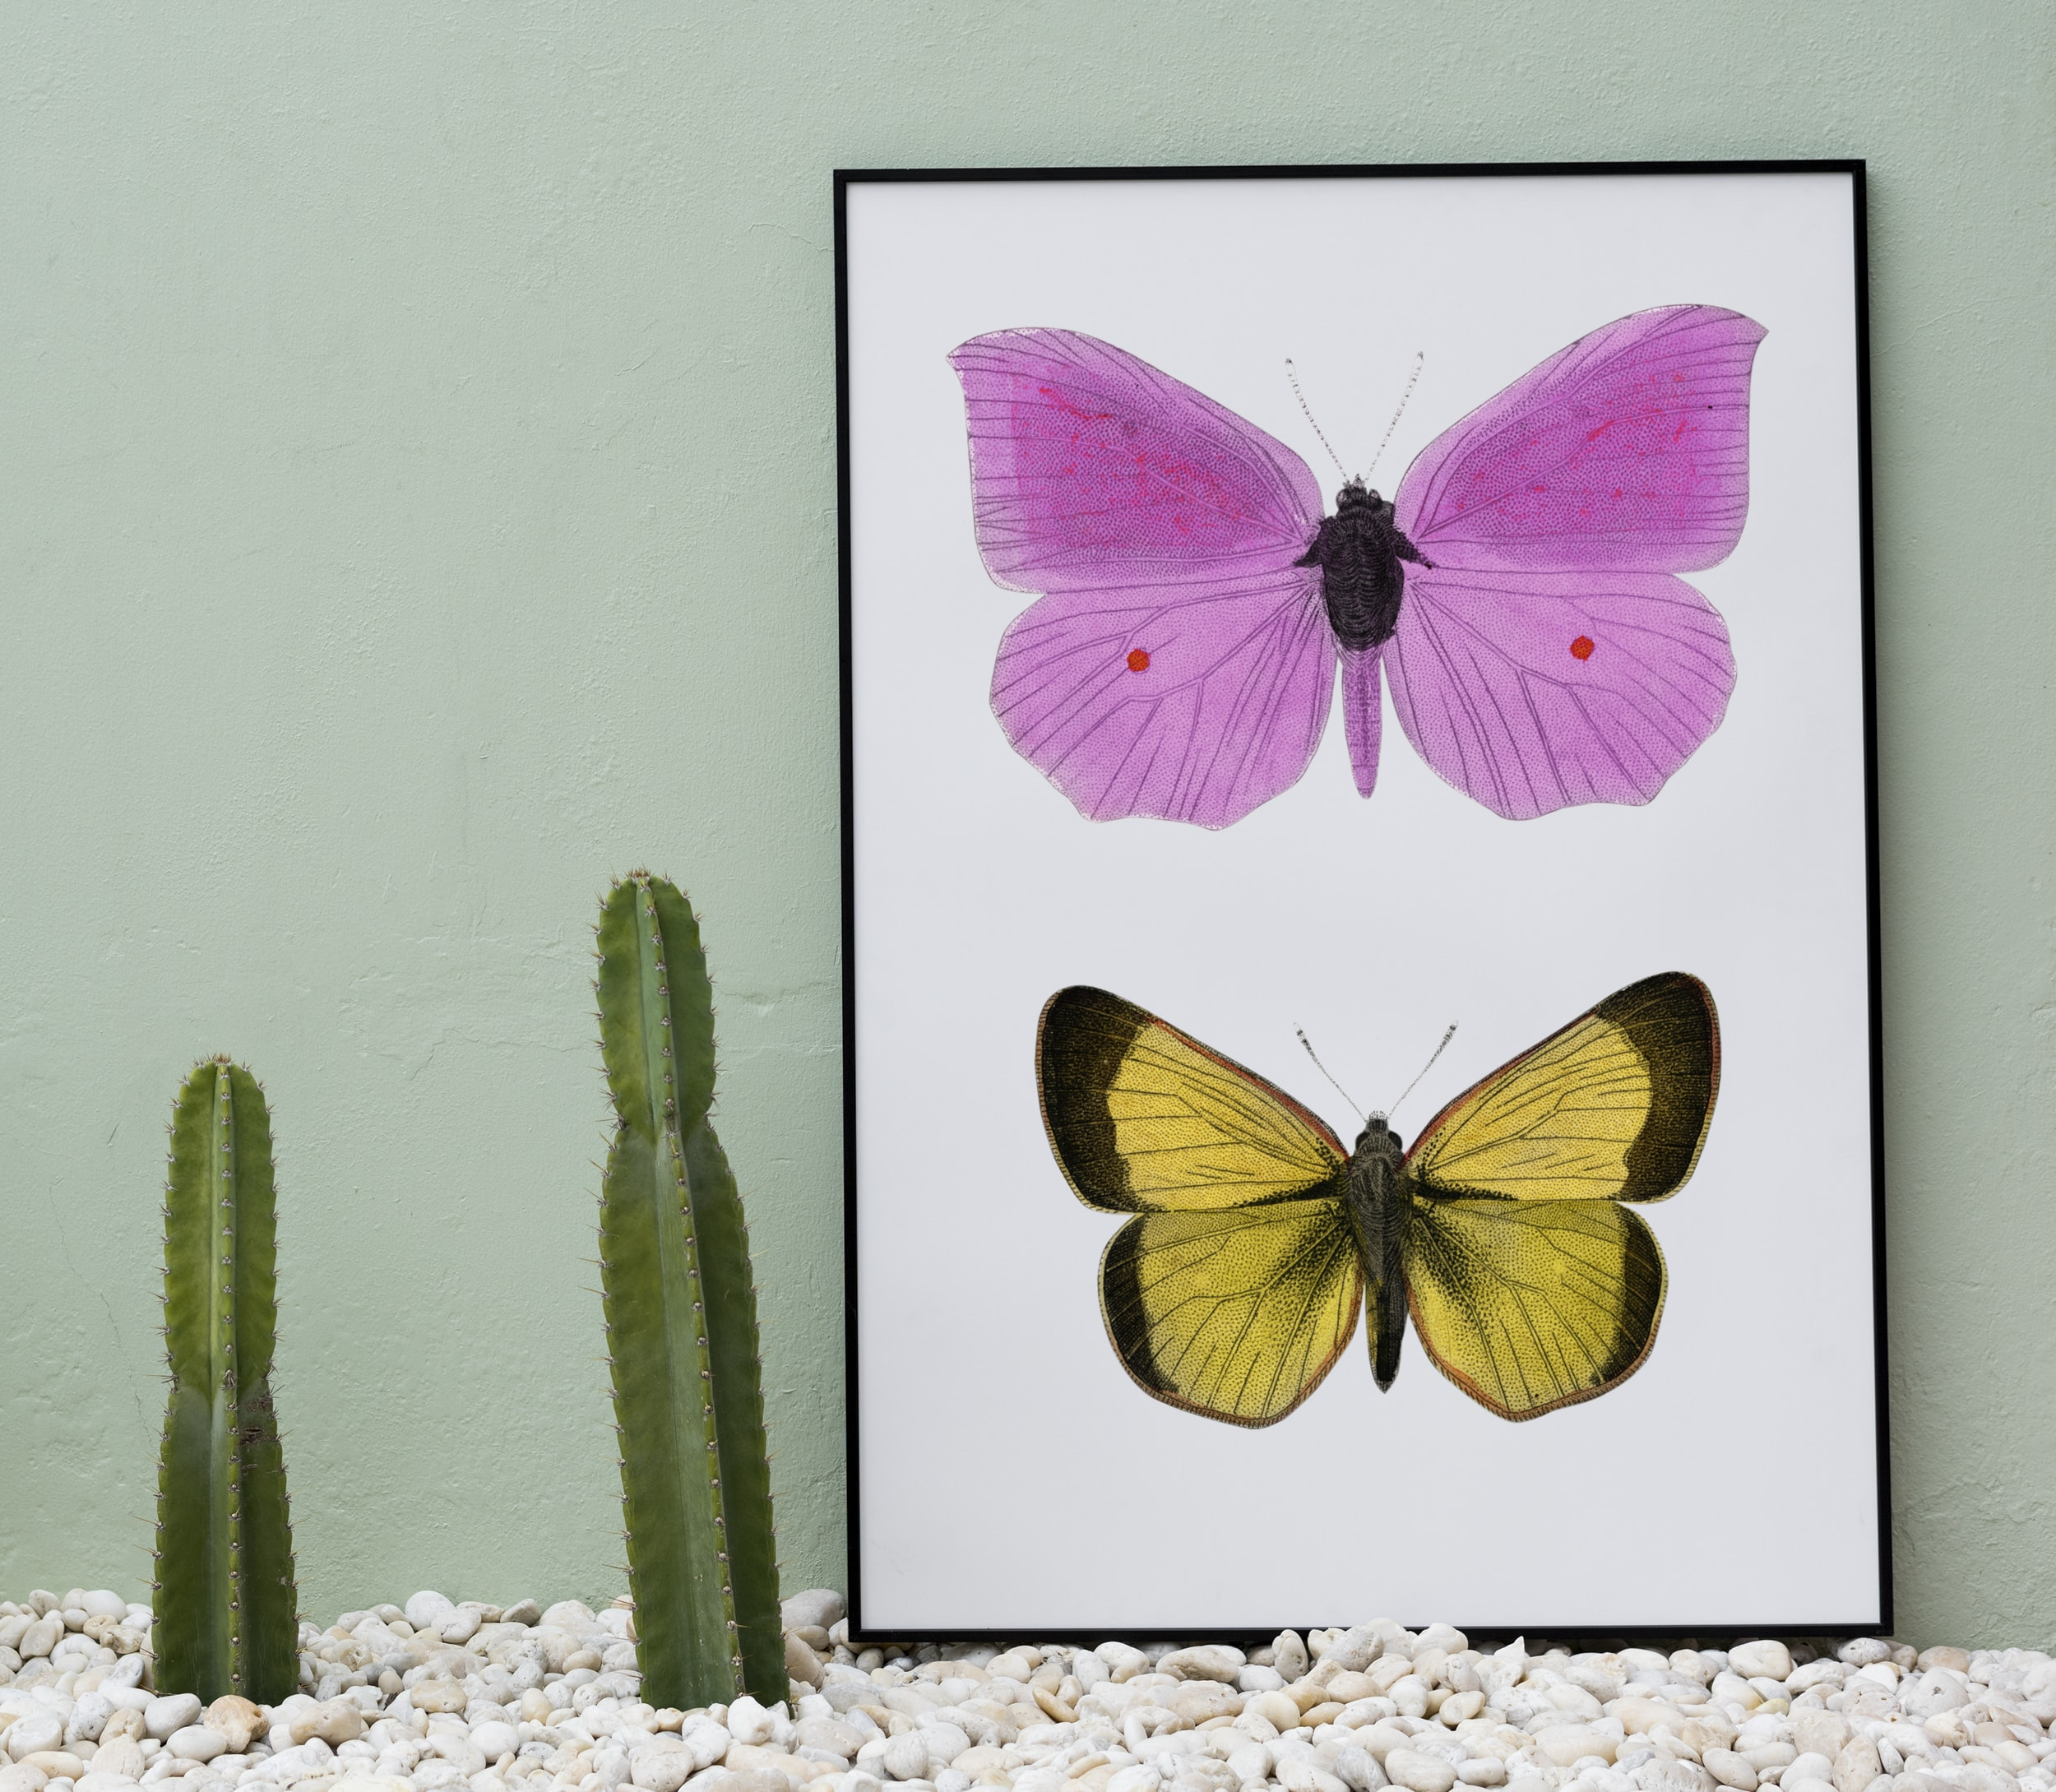 two pink and yellow butterflies painting near green cactus